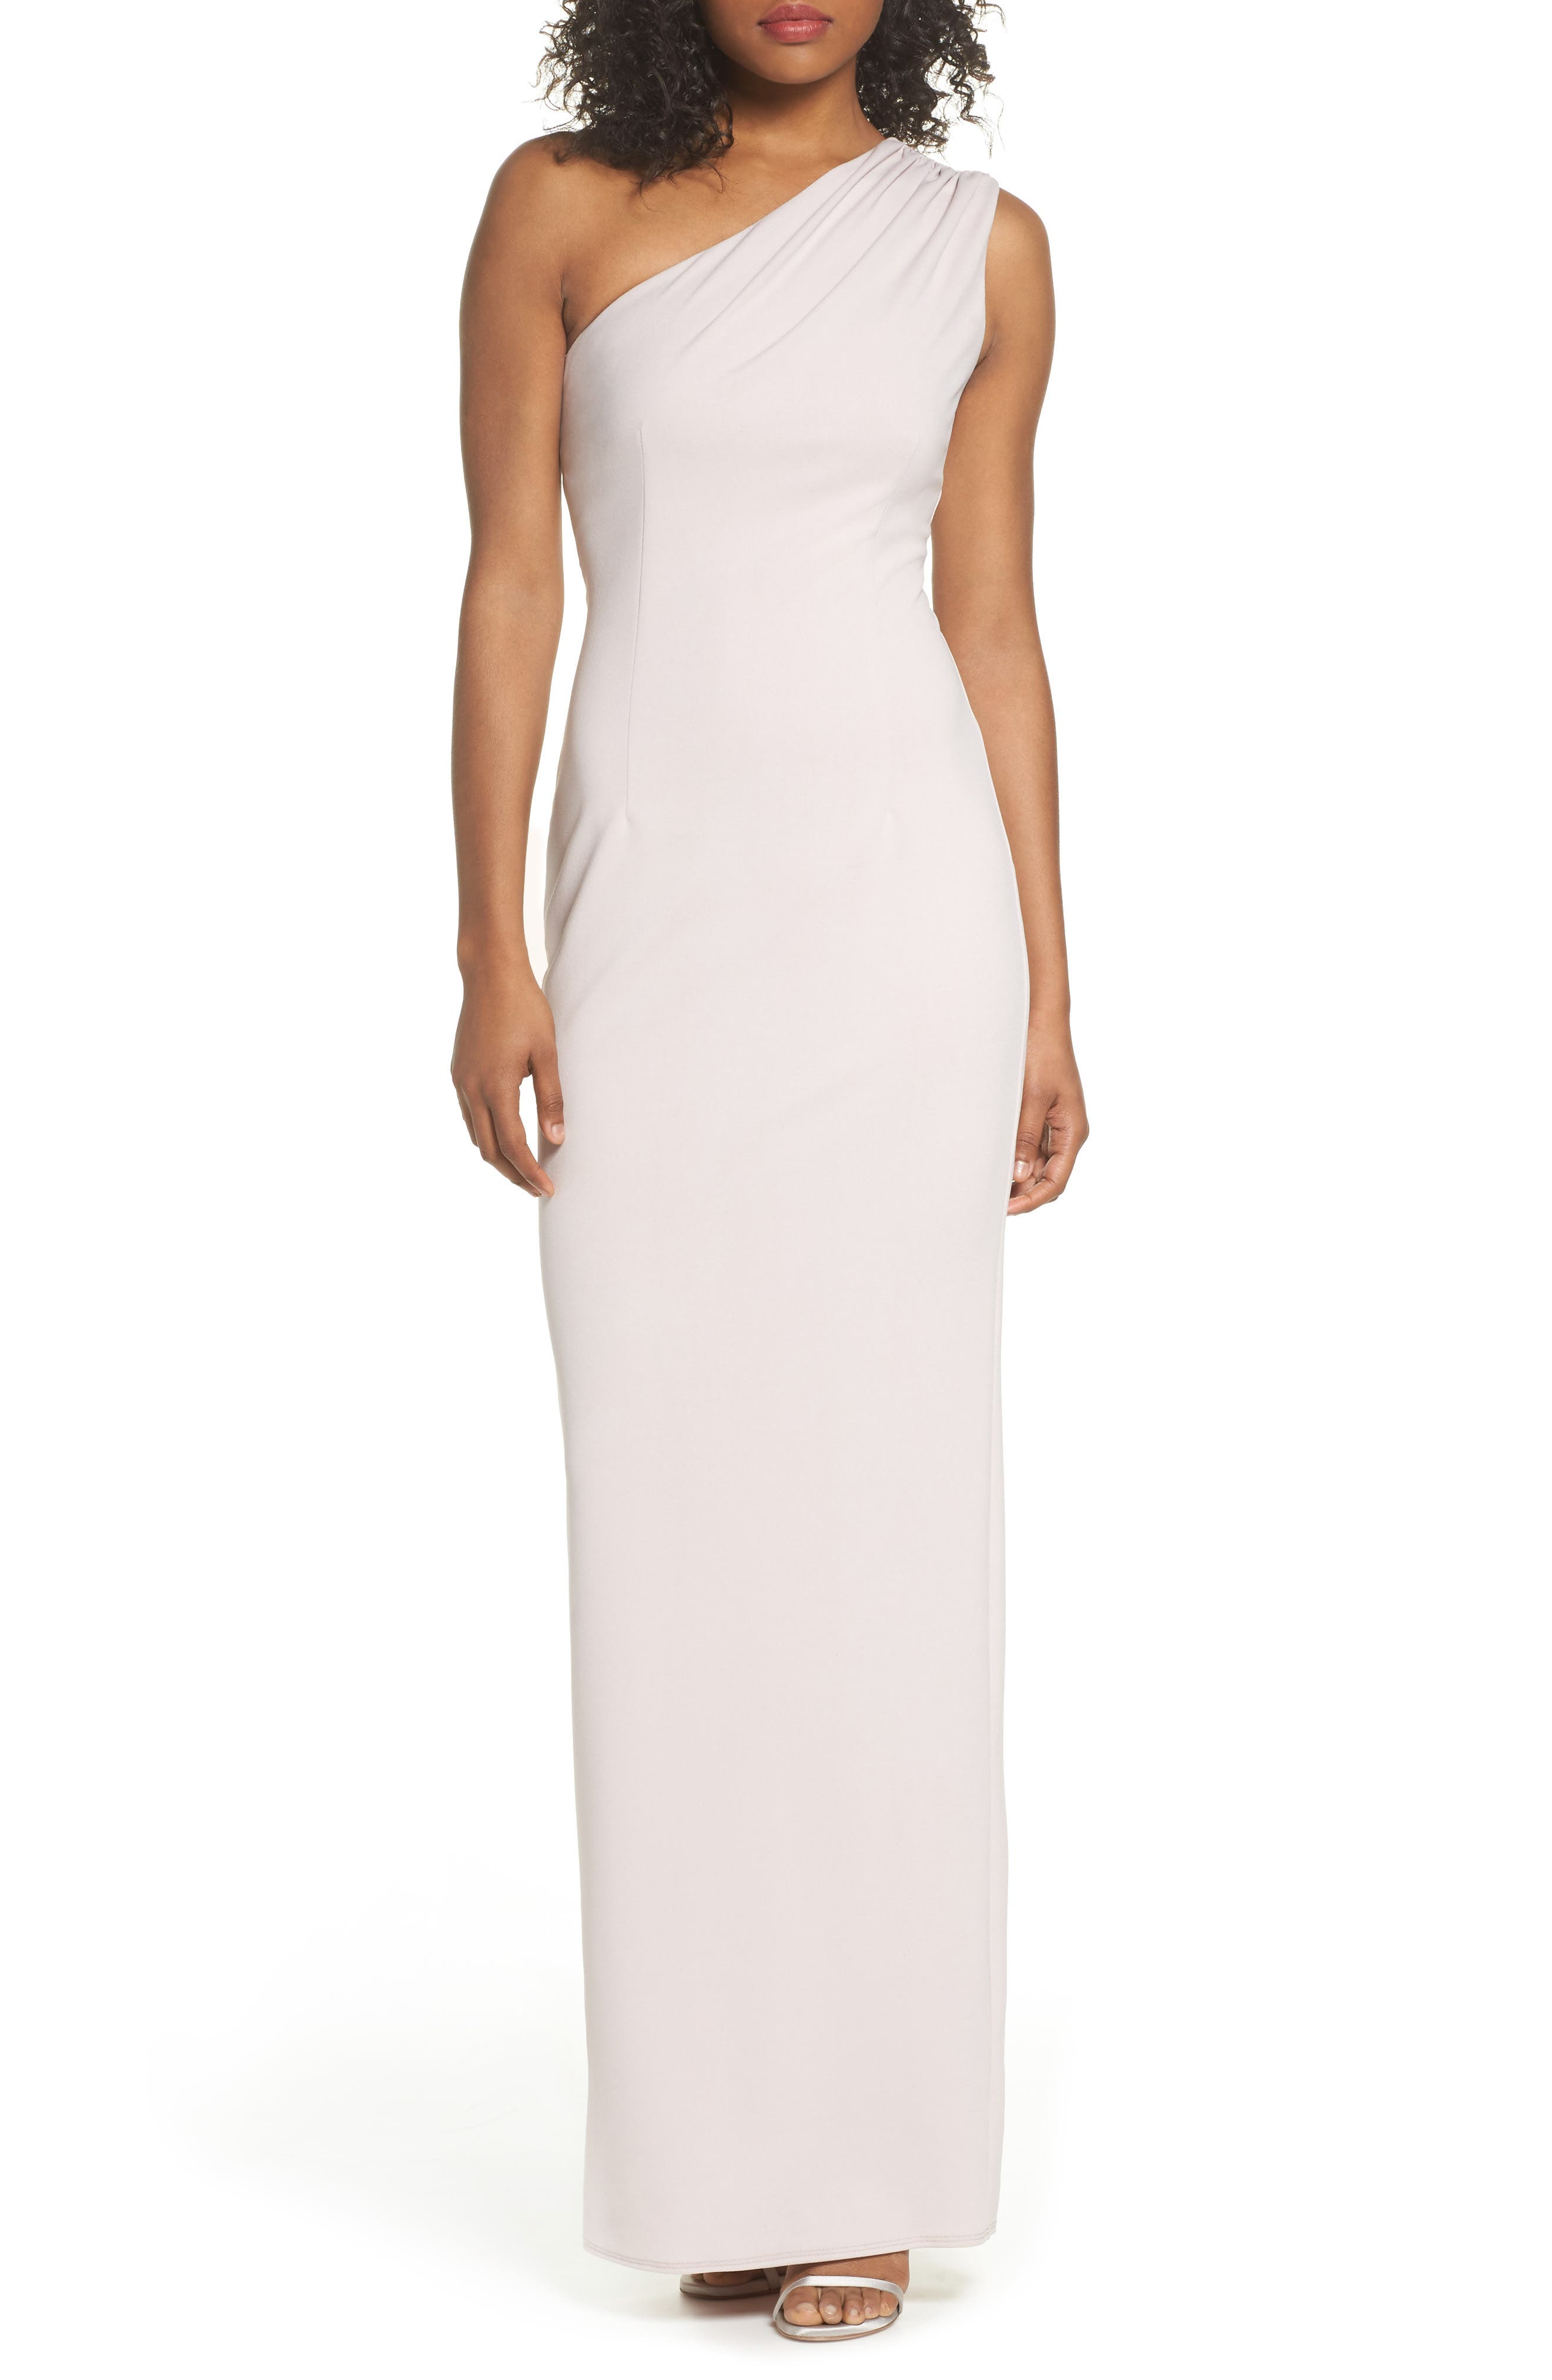 Katie May Angelina One-Shoulder Crepe Column Gown